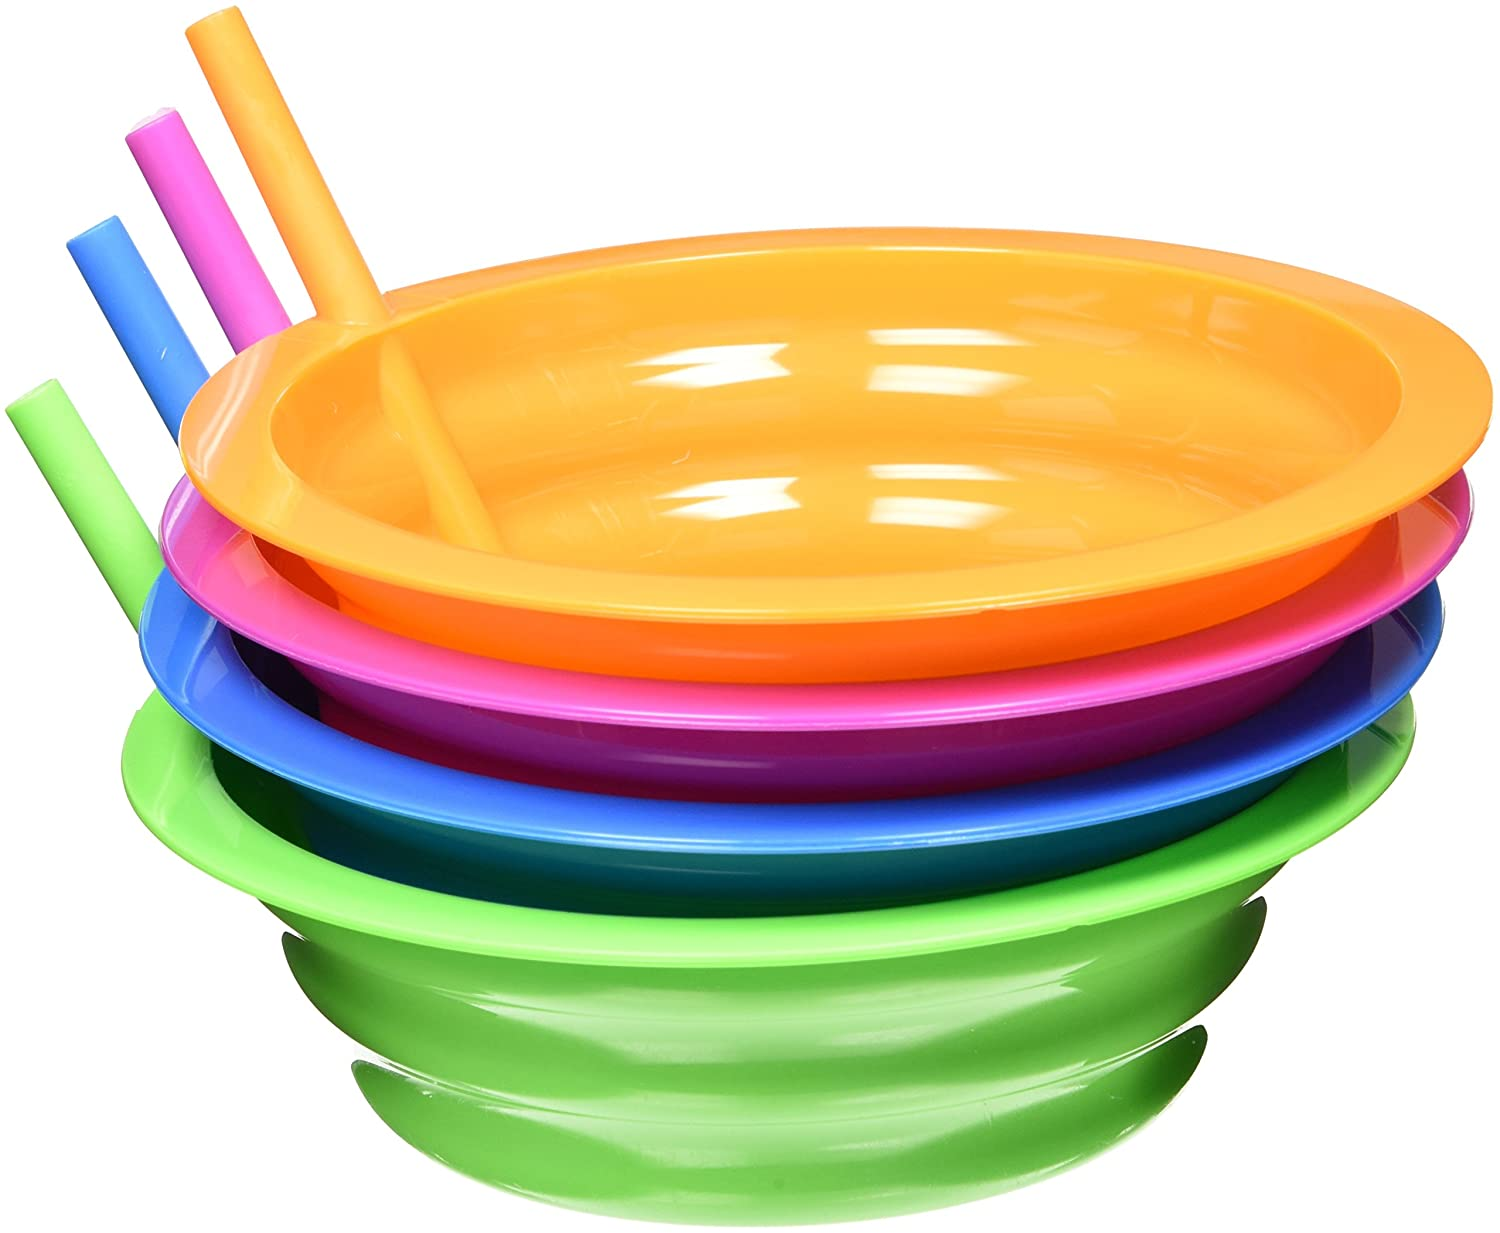 Arrow Plastic Sip-A-Bowl 22 oz, Assorted Colors - Pack of 4 00265 x 4